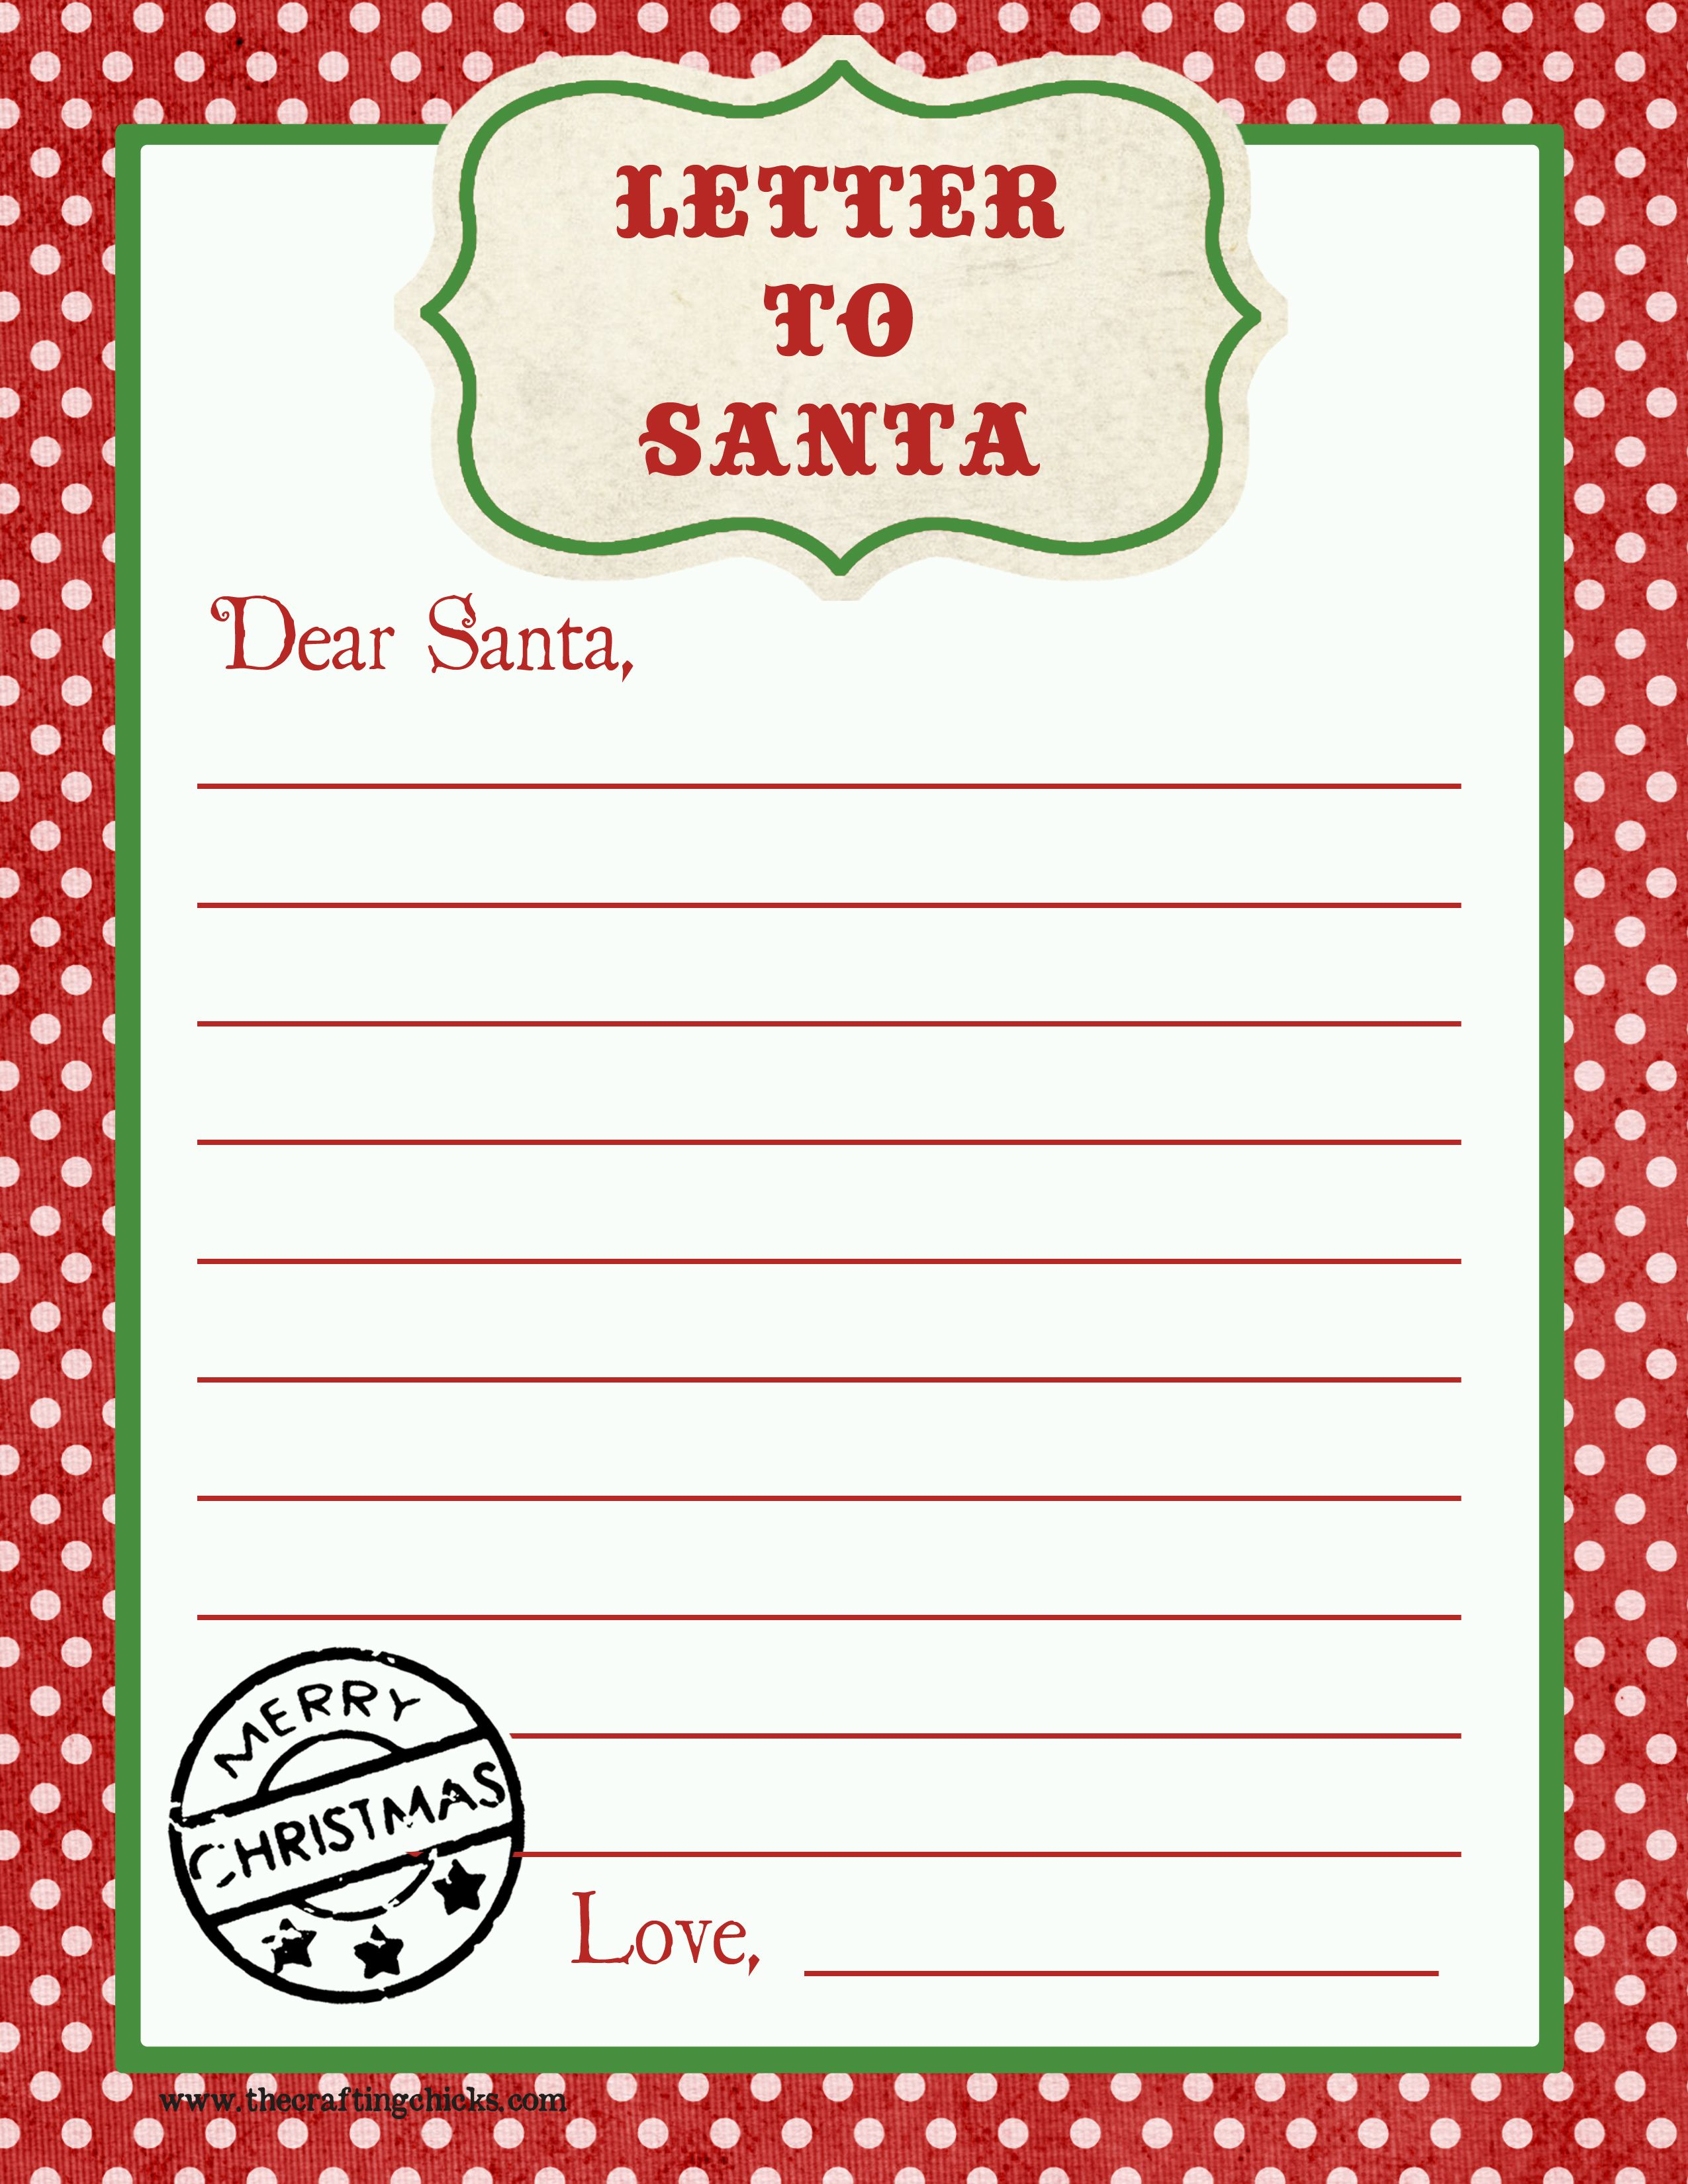 Free Printable Letter to Santa Template - Letter to Santa Free Printable Download